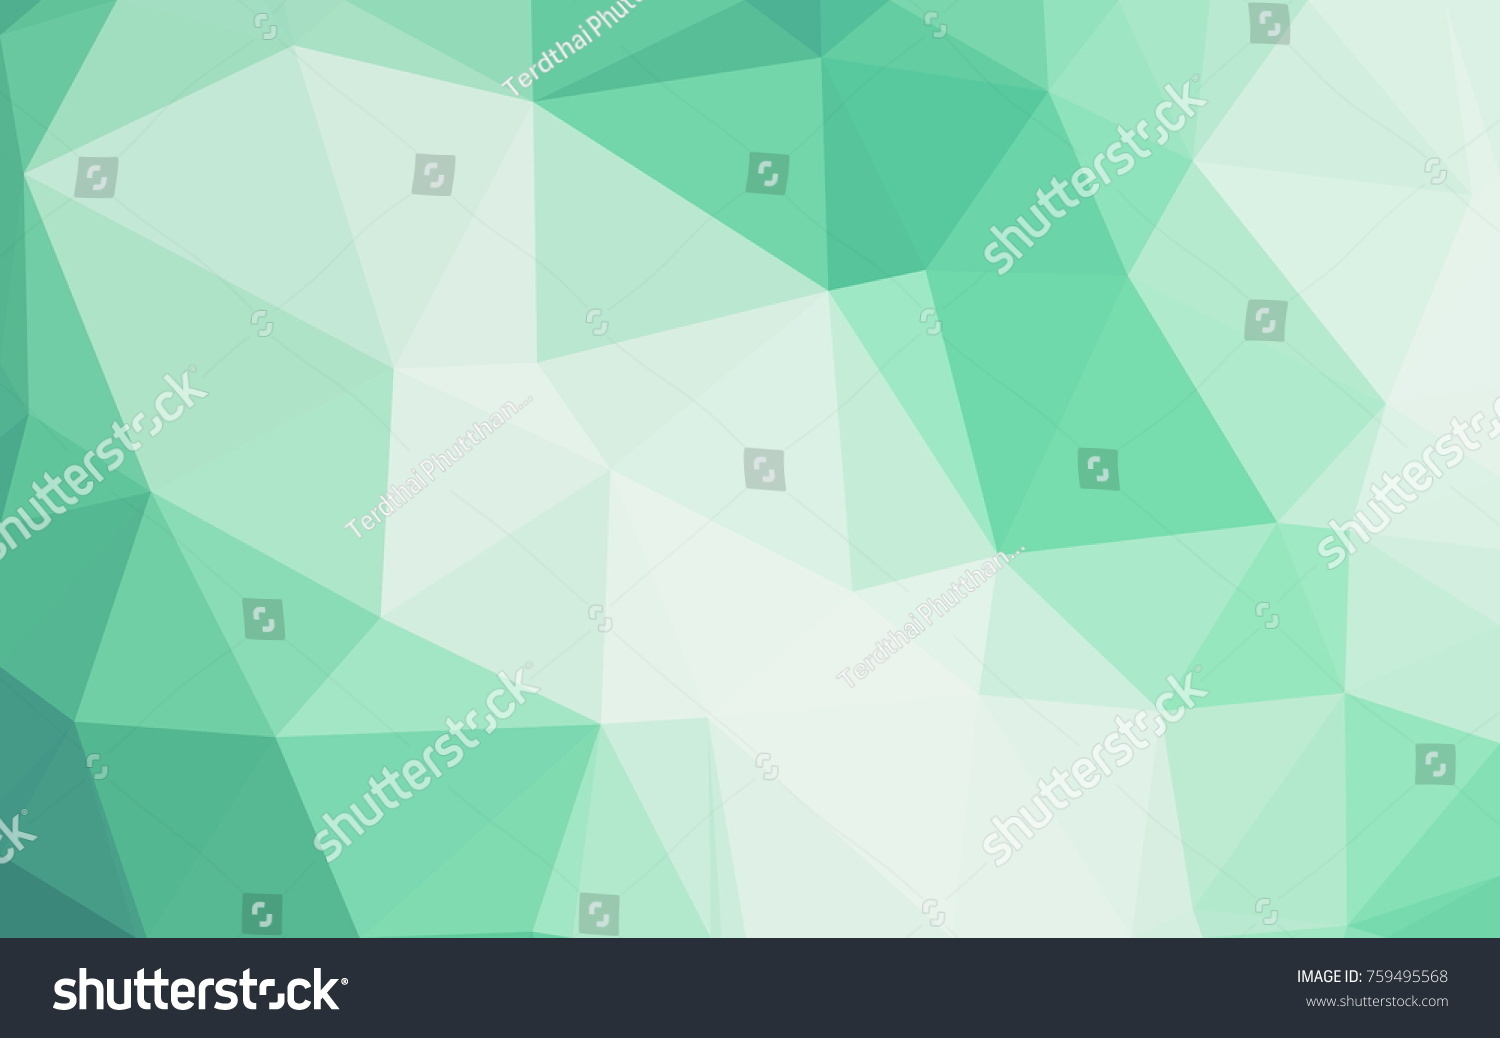 low poly style abstract polygonal background stock illustration